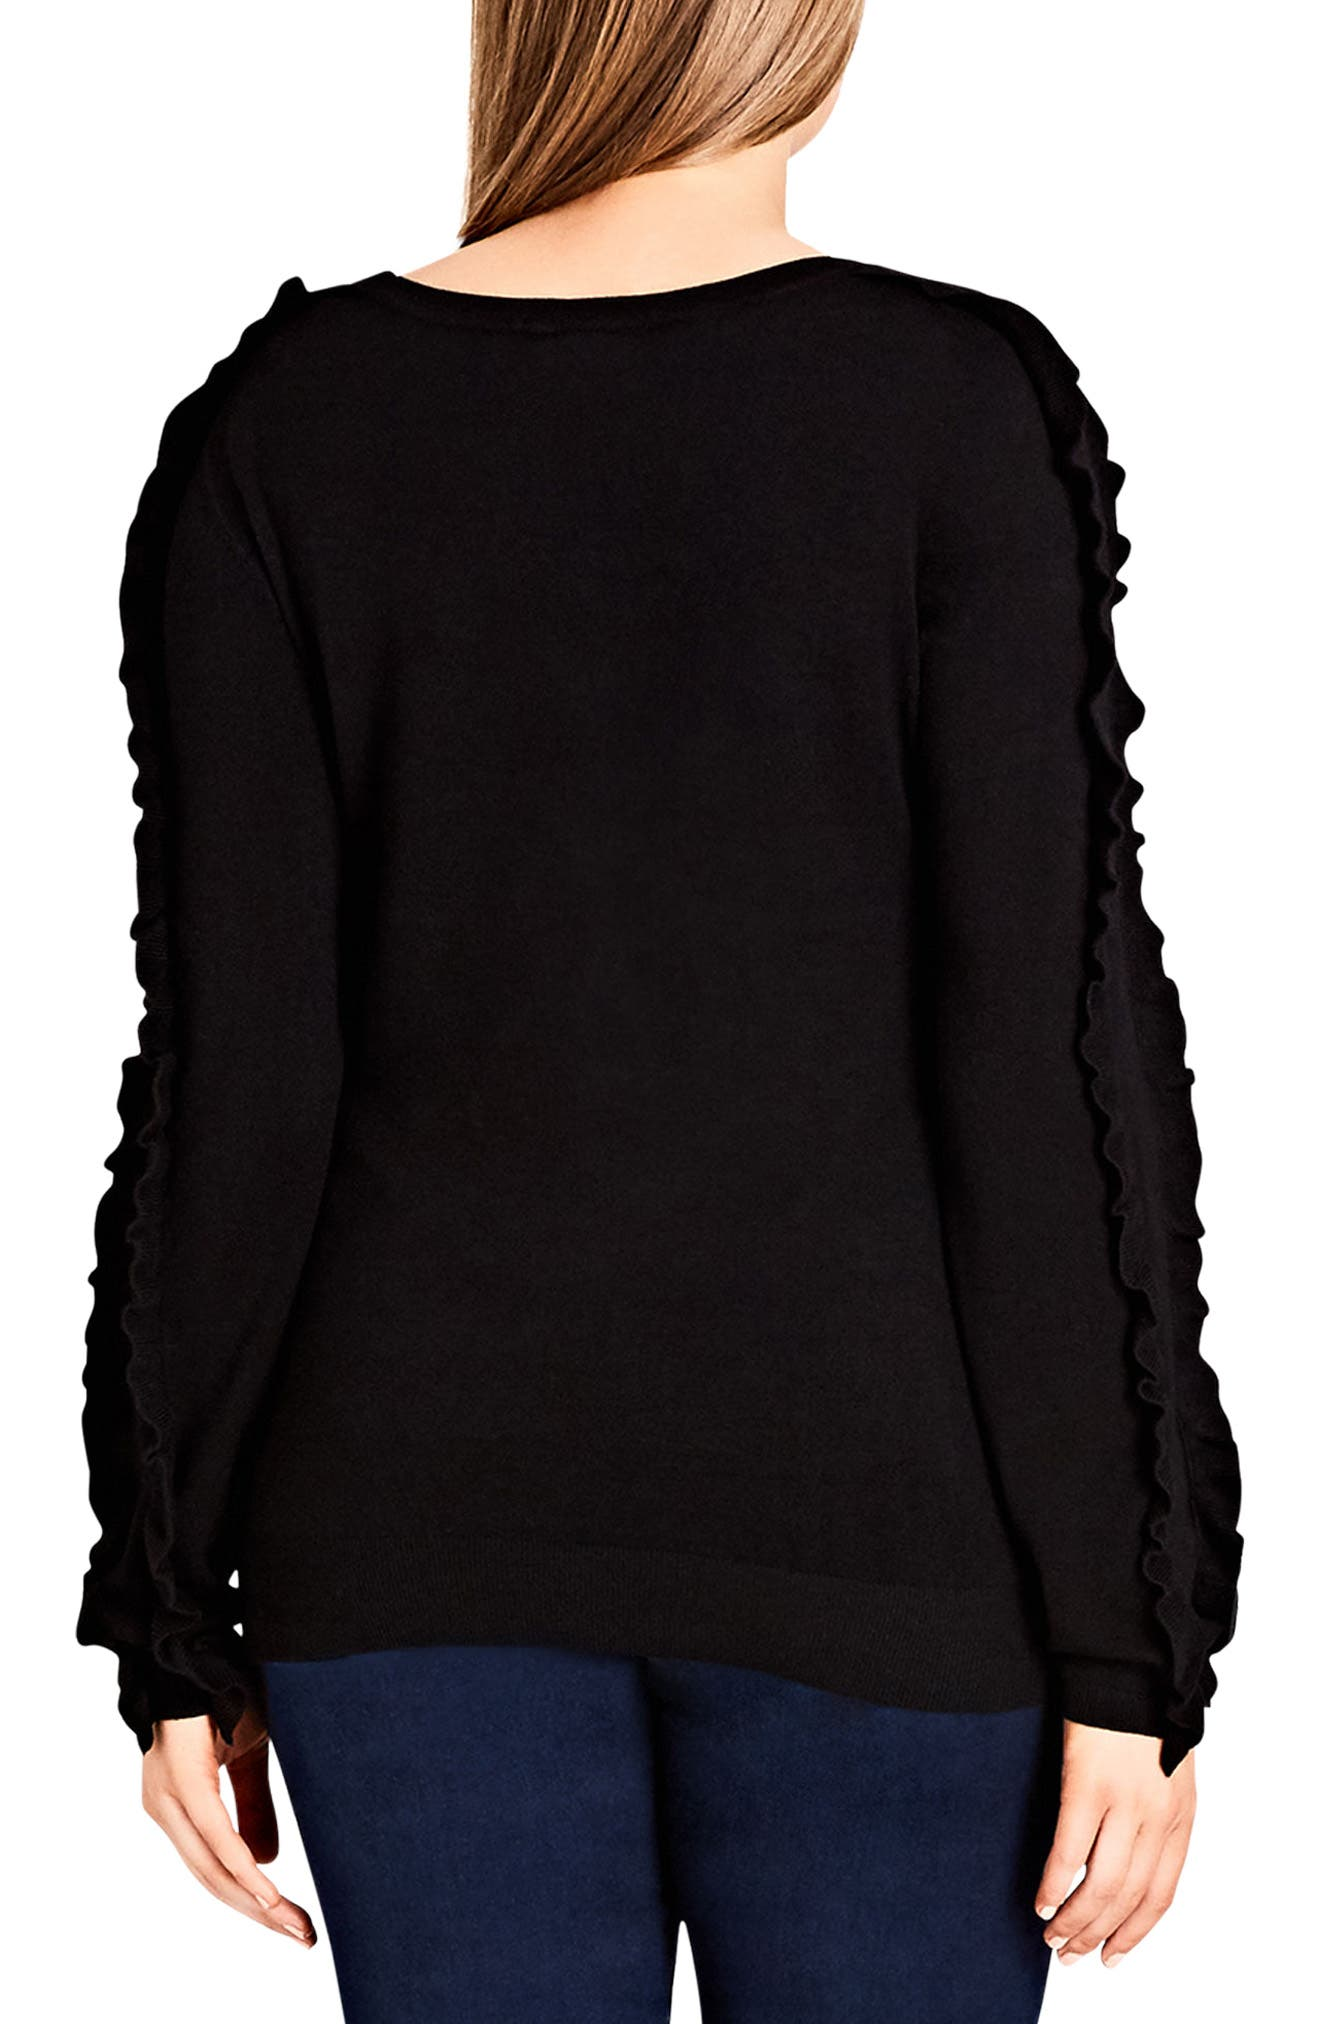 Charmed Ruffle Sleeve Sweater,                             Alternate thumbnail 2, color,                             001